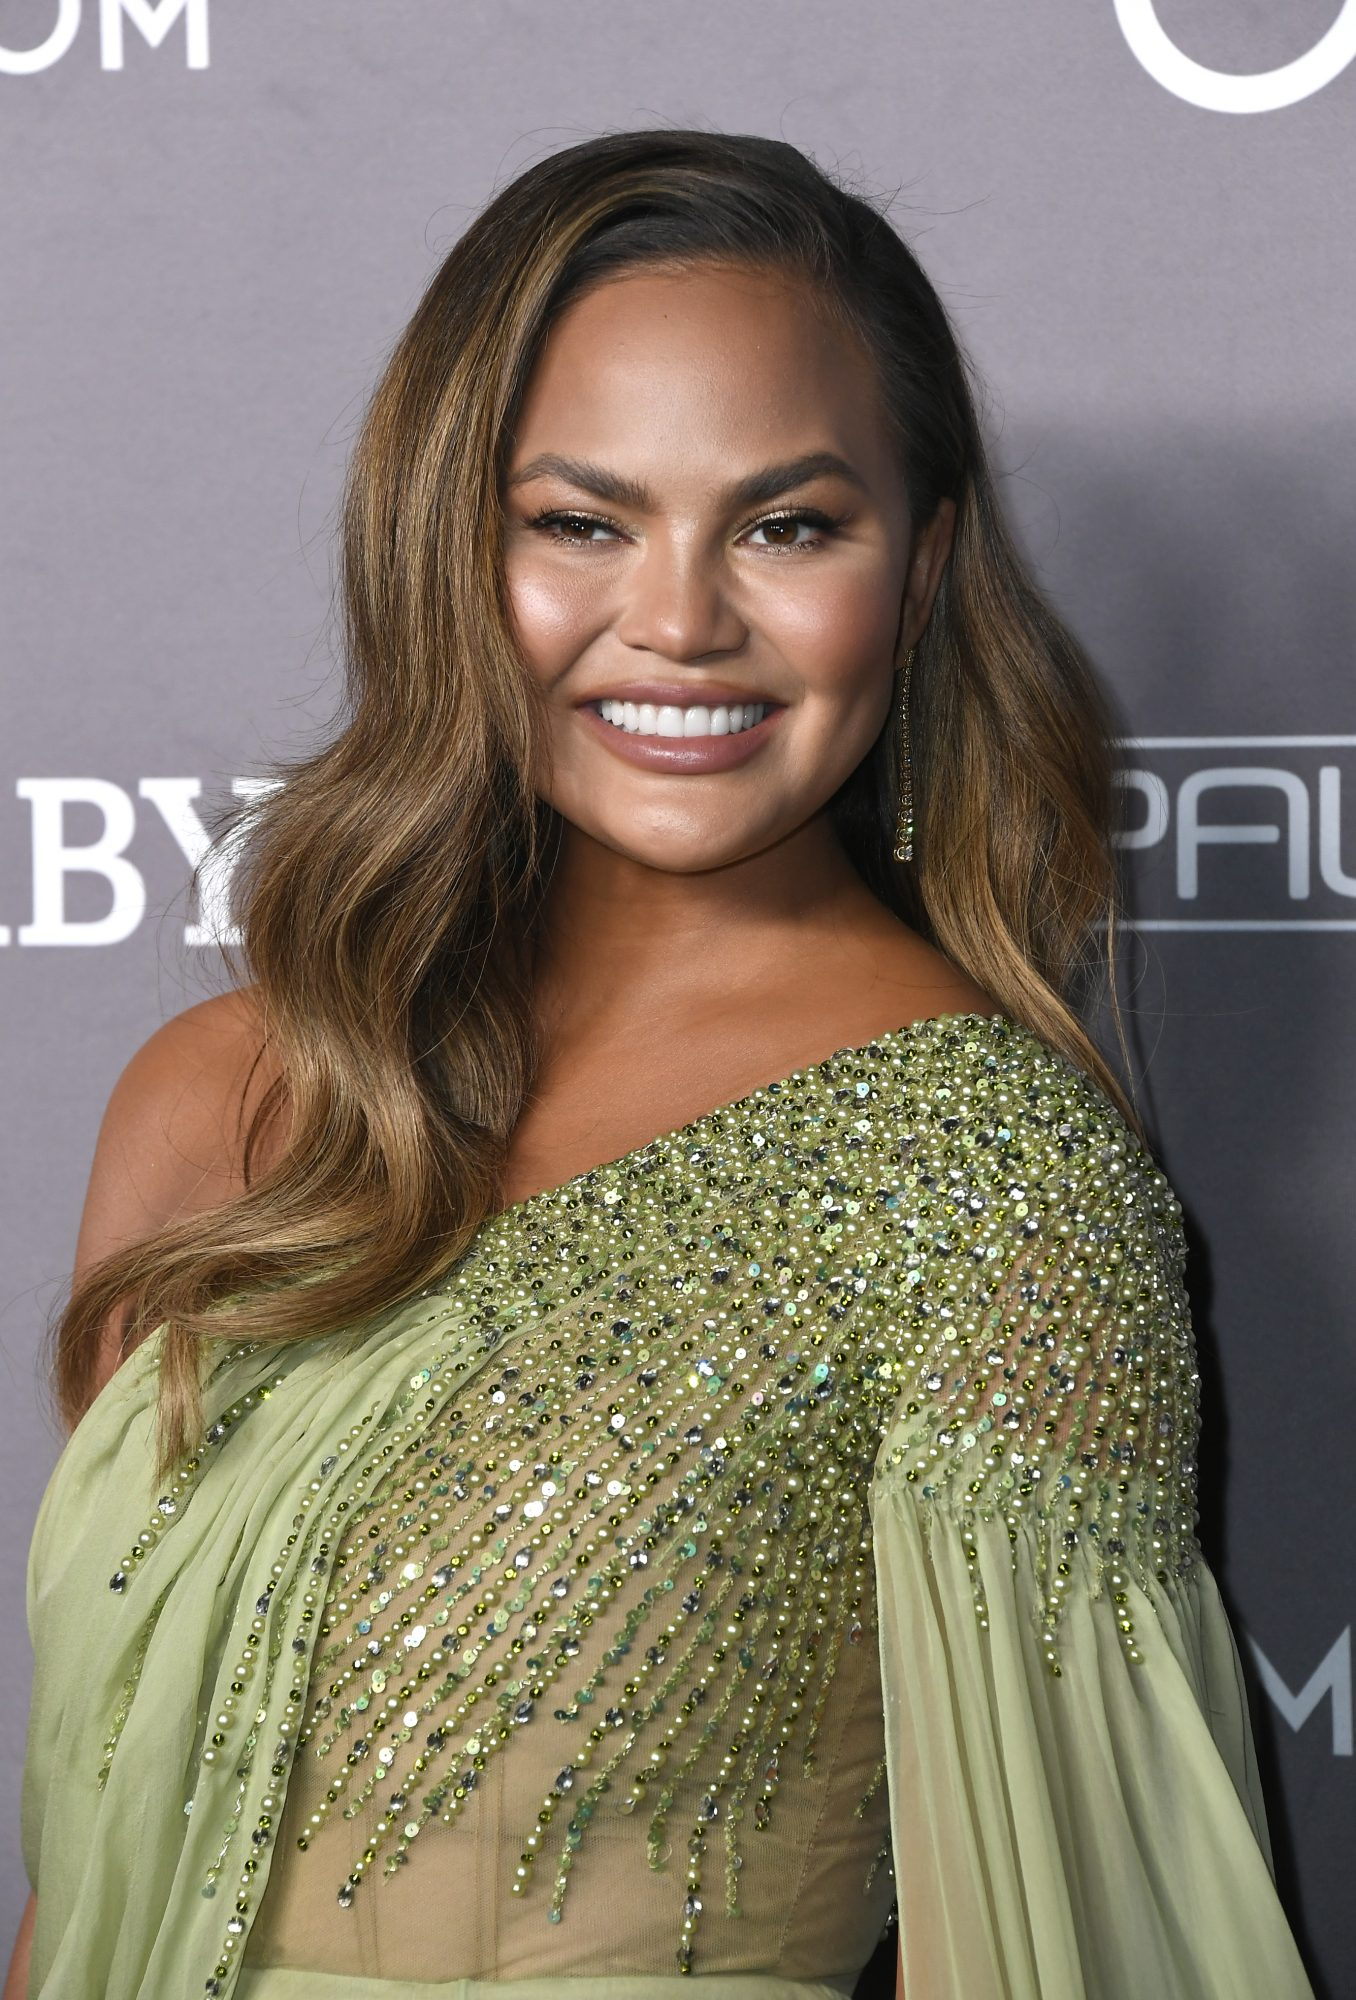 Chrissy Teigen Baby2Baby Gala Presented By Paul Mitchell - Arrivals